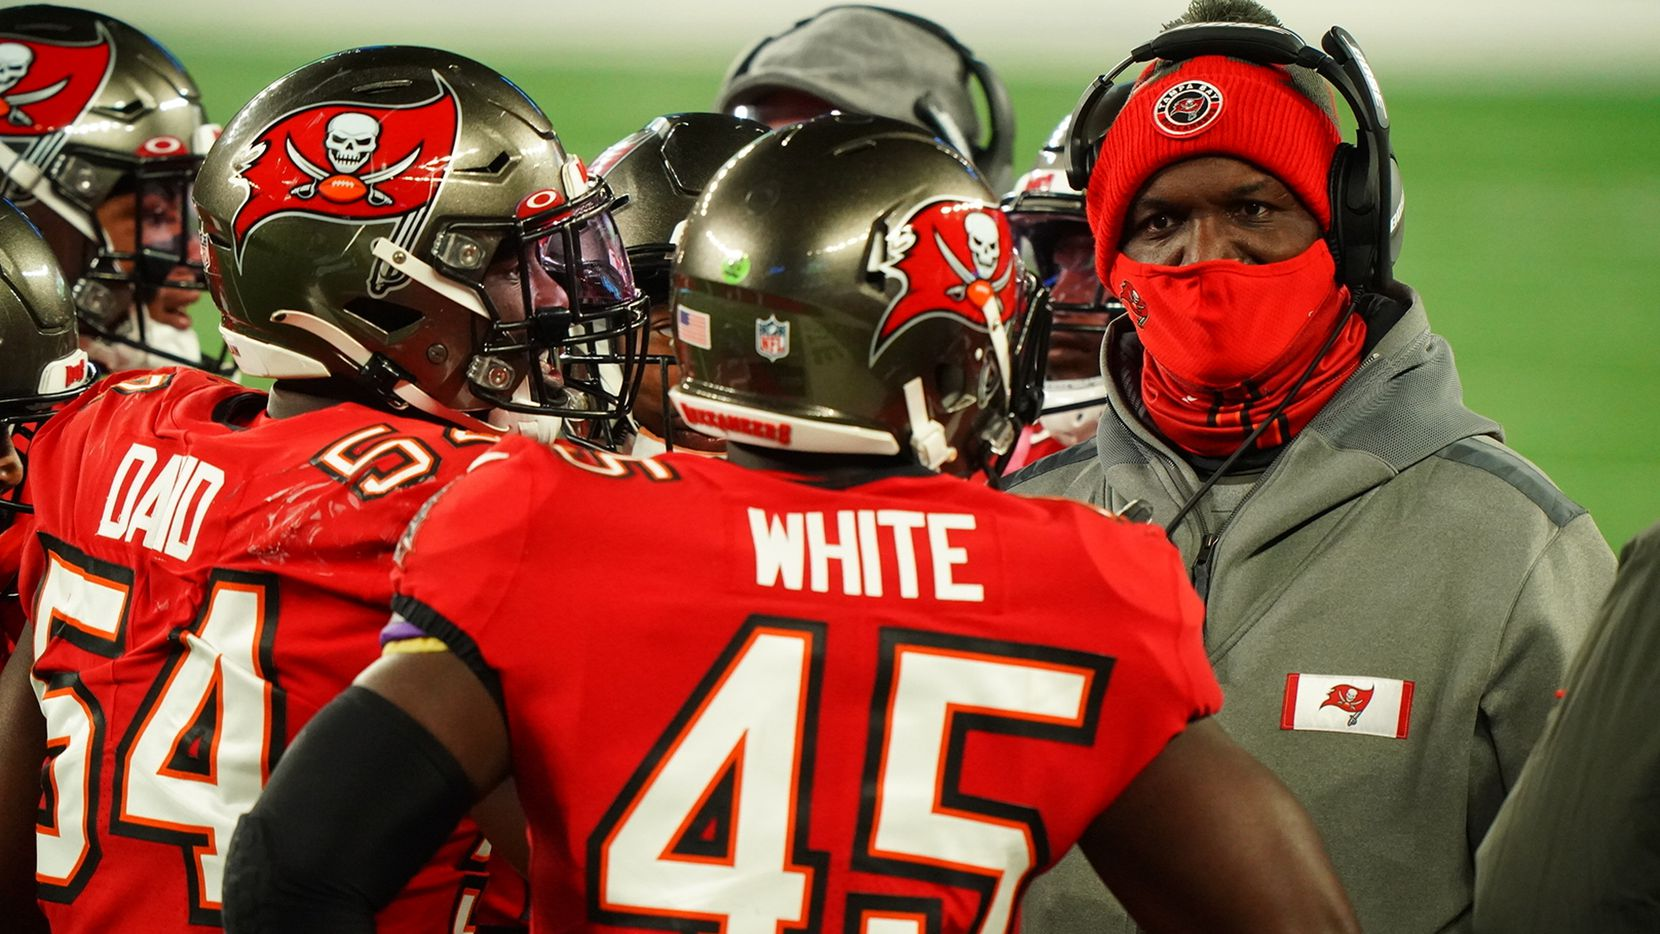 Tampa Bay Buccaneers defensive coordinator Todd Bowles with players during game vs New York Giants at MetLife Stadium.